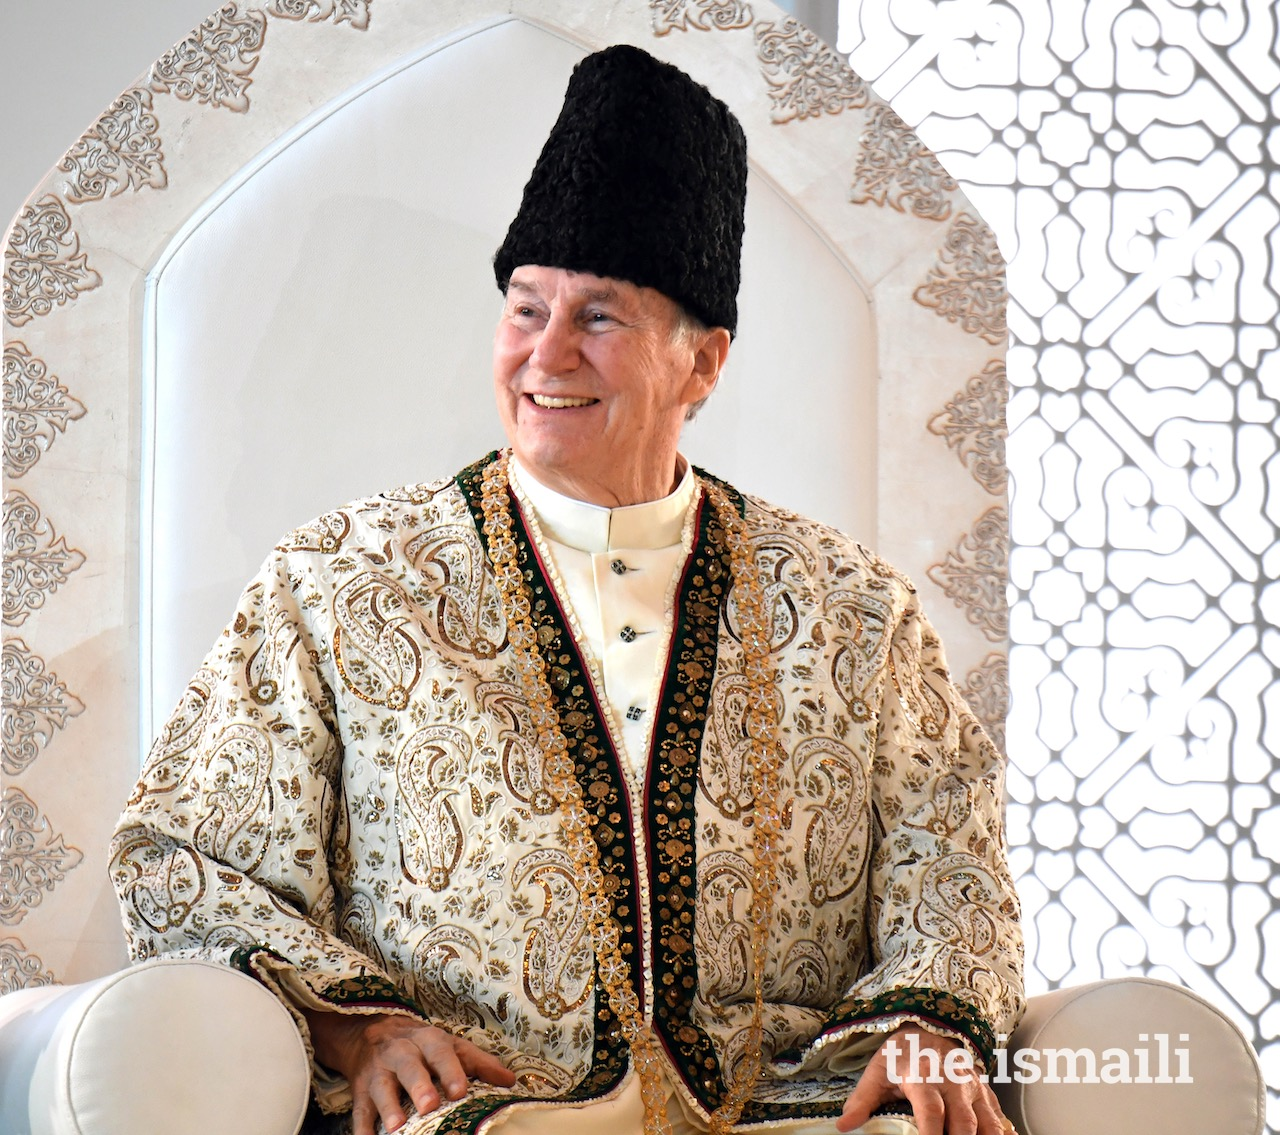 His Highness the Aga Khan, Mawlana Hazar Imam, Talikas 2020, Simerg and Barakh